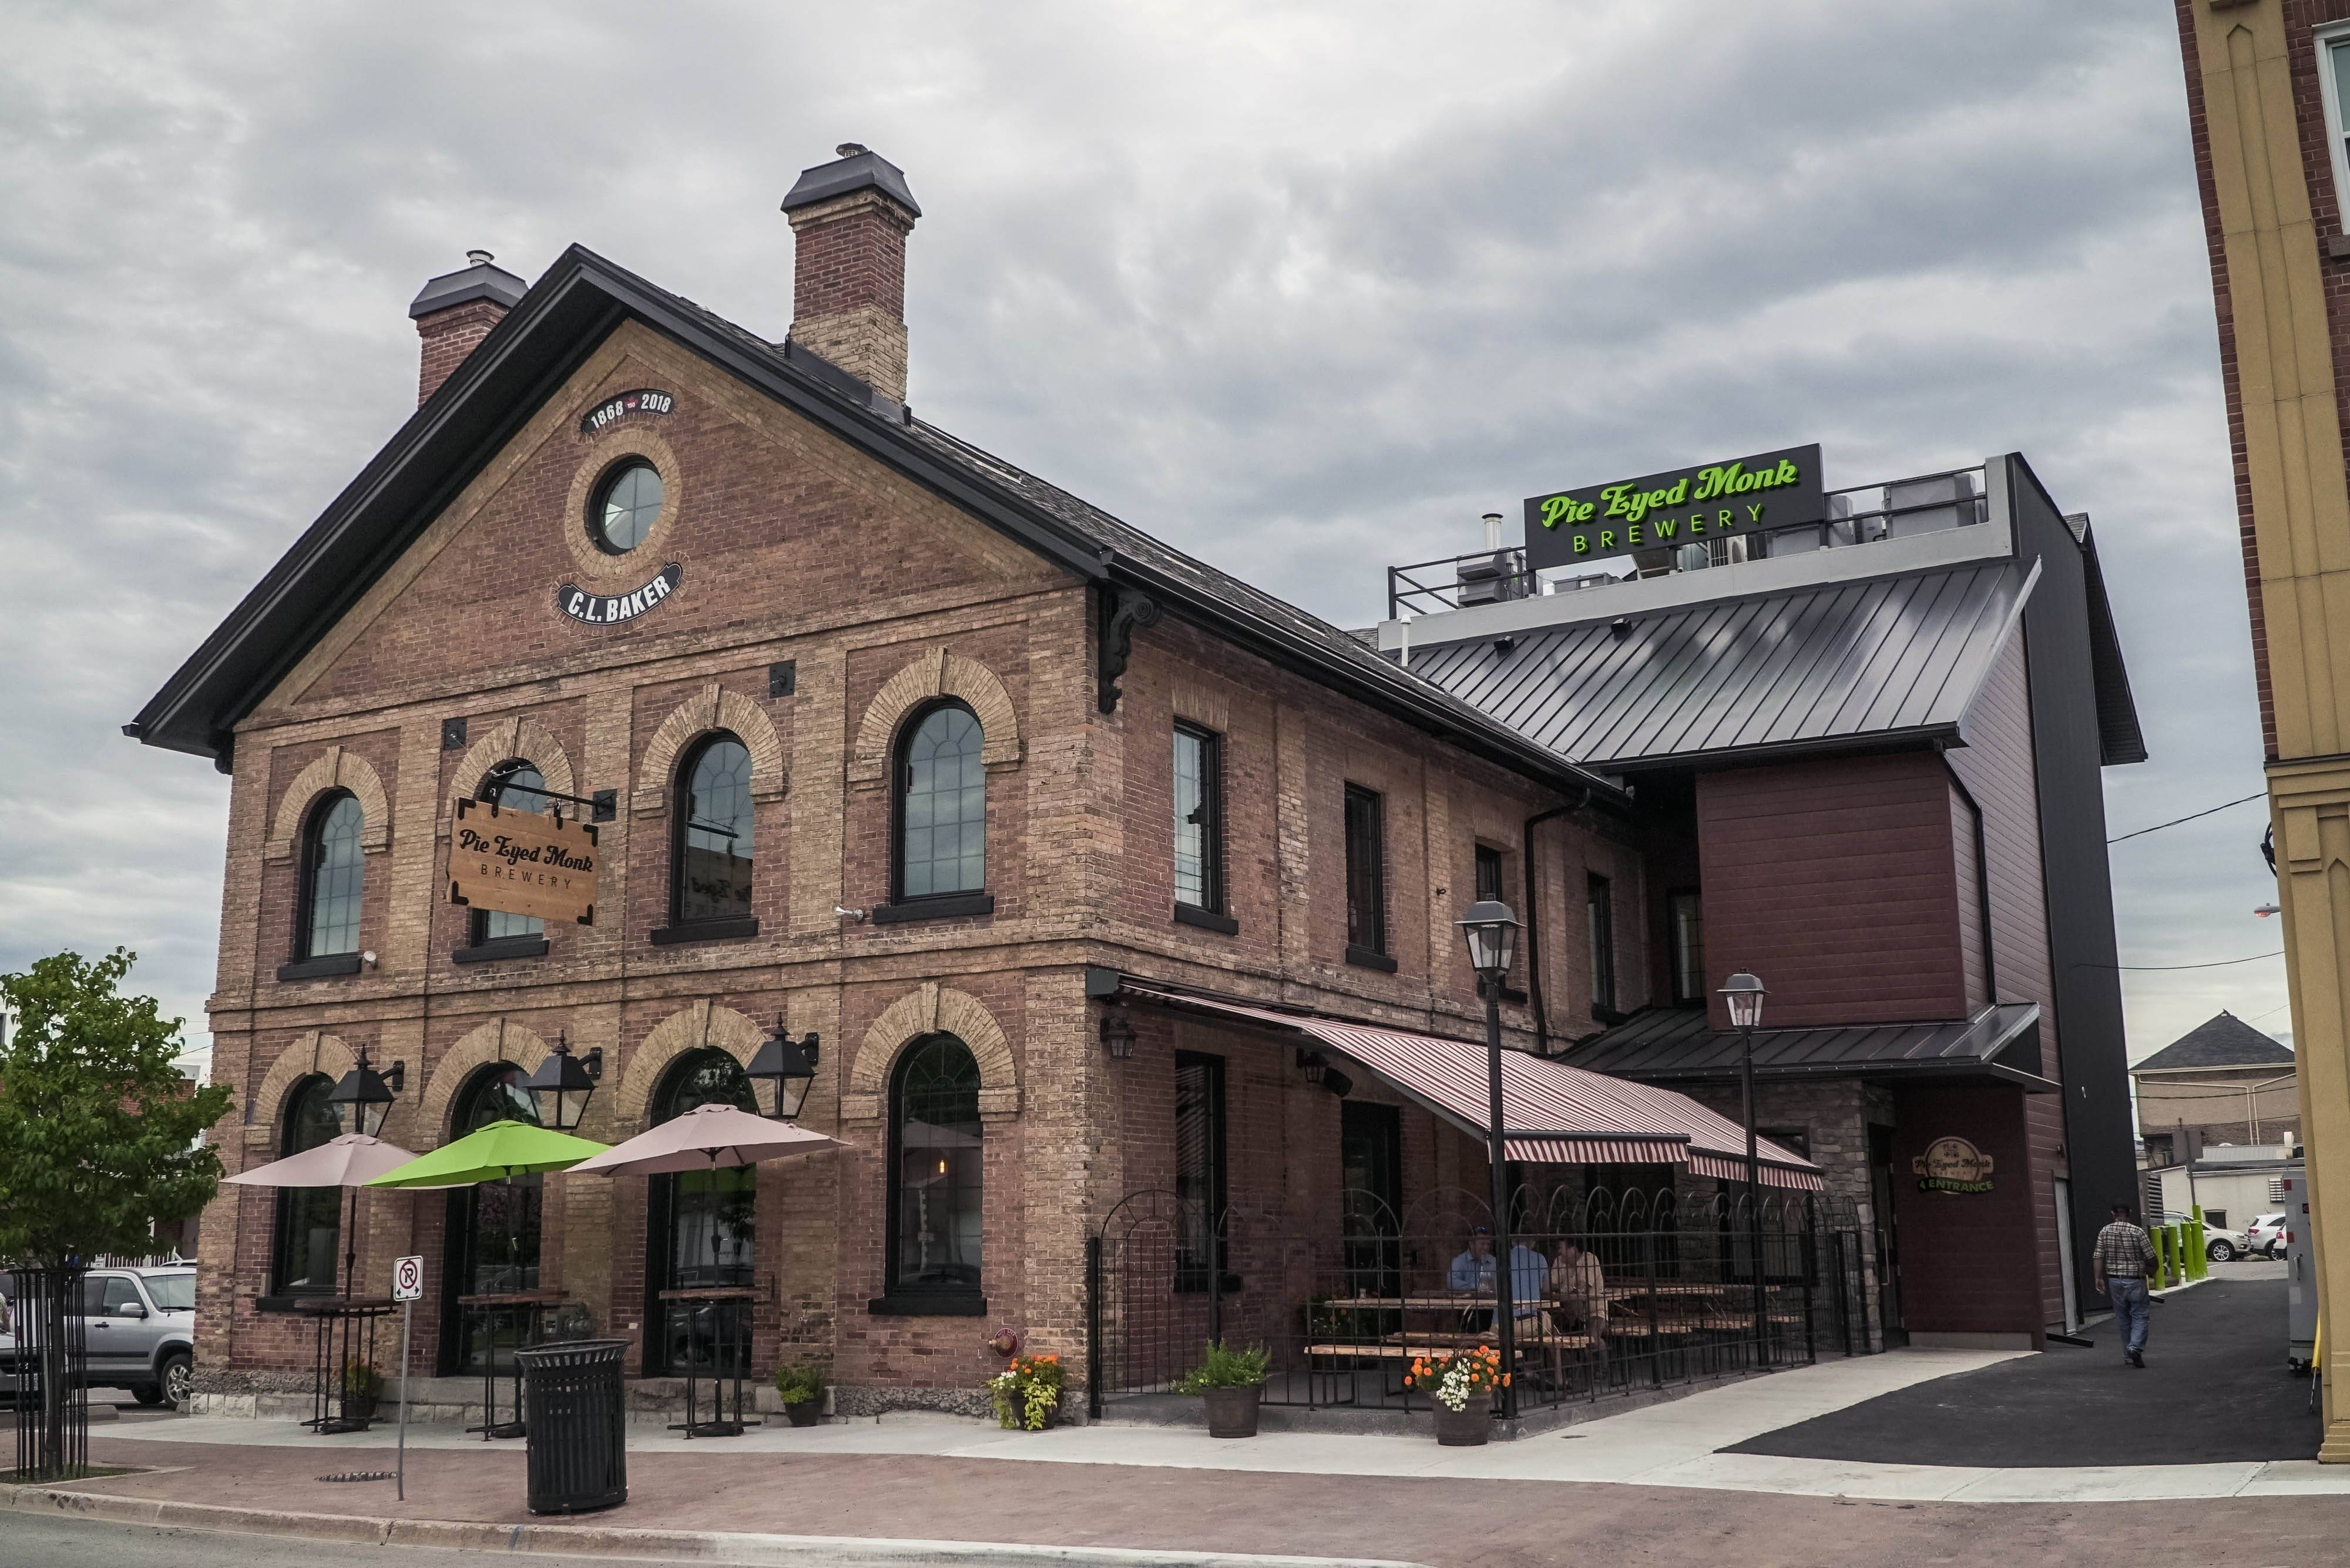 C.L. Baker Historic Building in Lindsay, home to the Pie Eyed Monk Brewery. Photo by Justen Soule